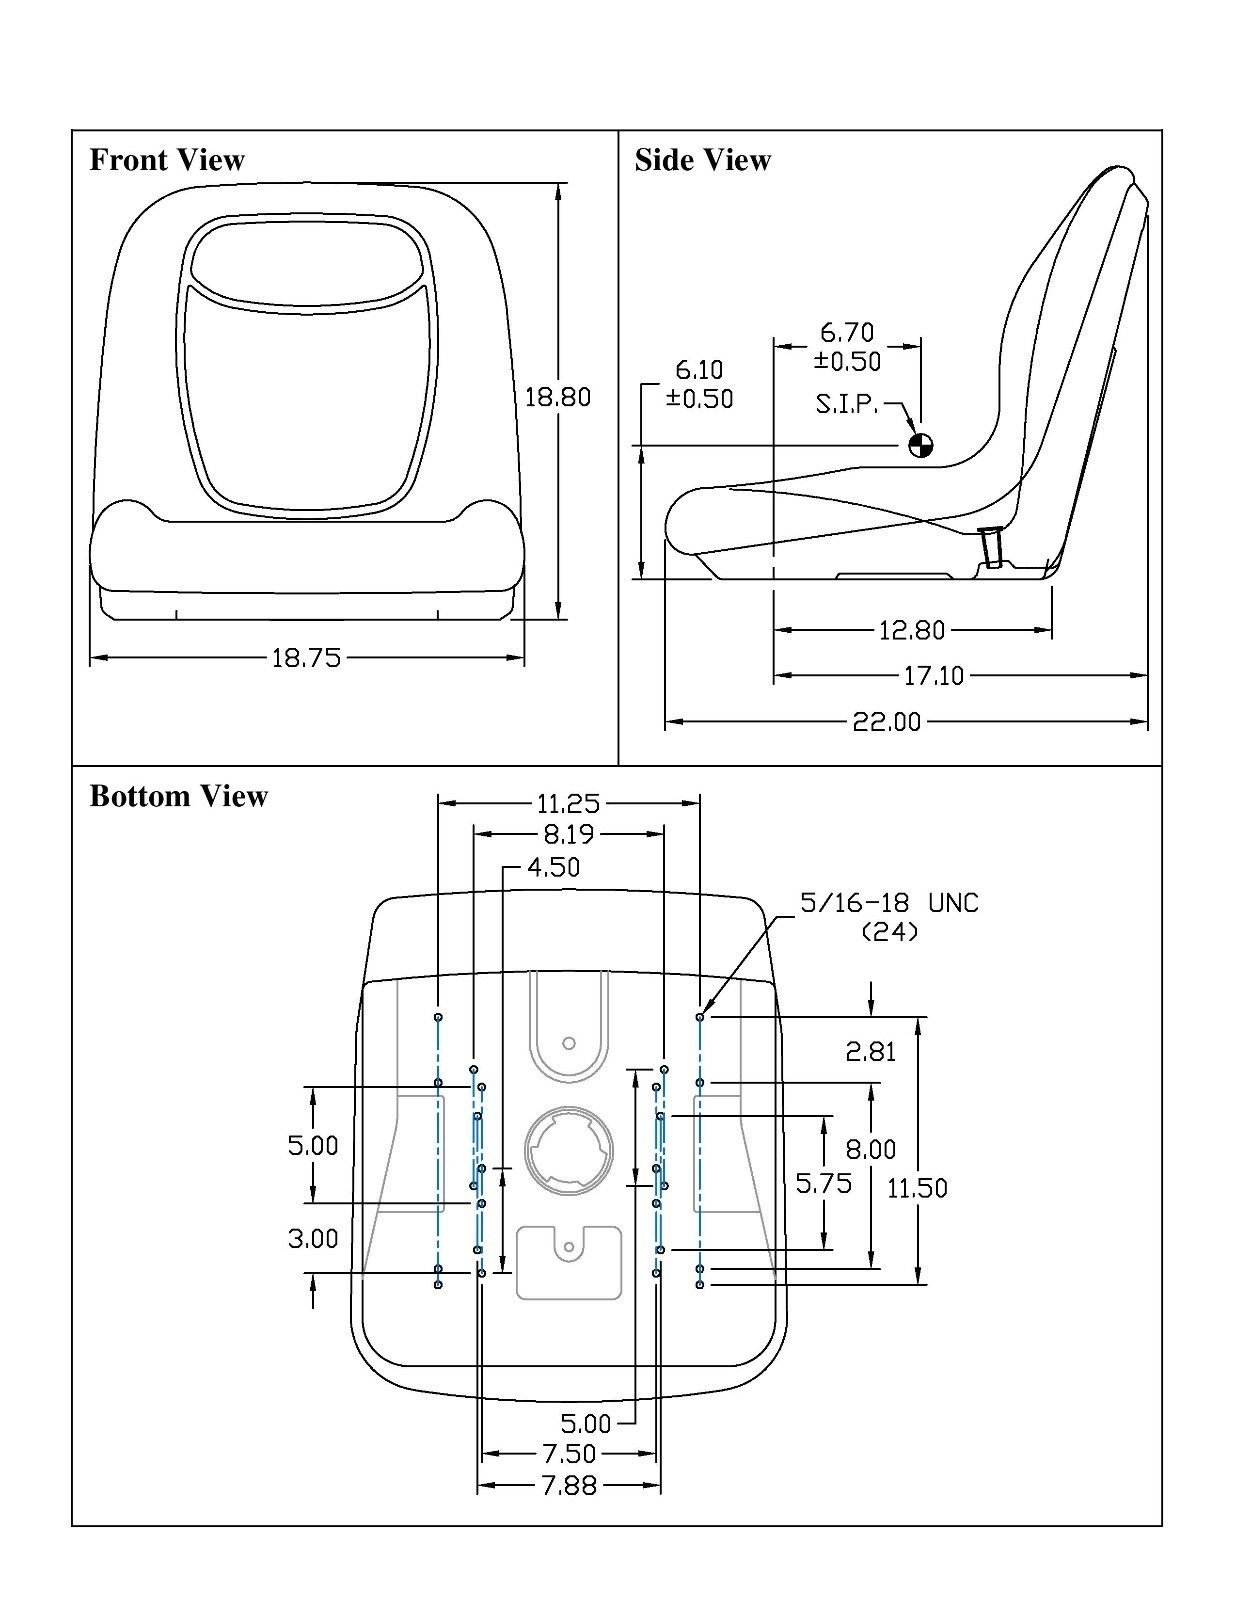 The ROP Shop Yellow HIGH Back SEAT w/Pivot Rod Bracket for John Deere 445 455 SST16 SST18 by The ROP Shop (Image #7)